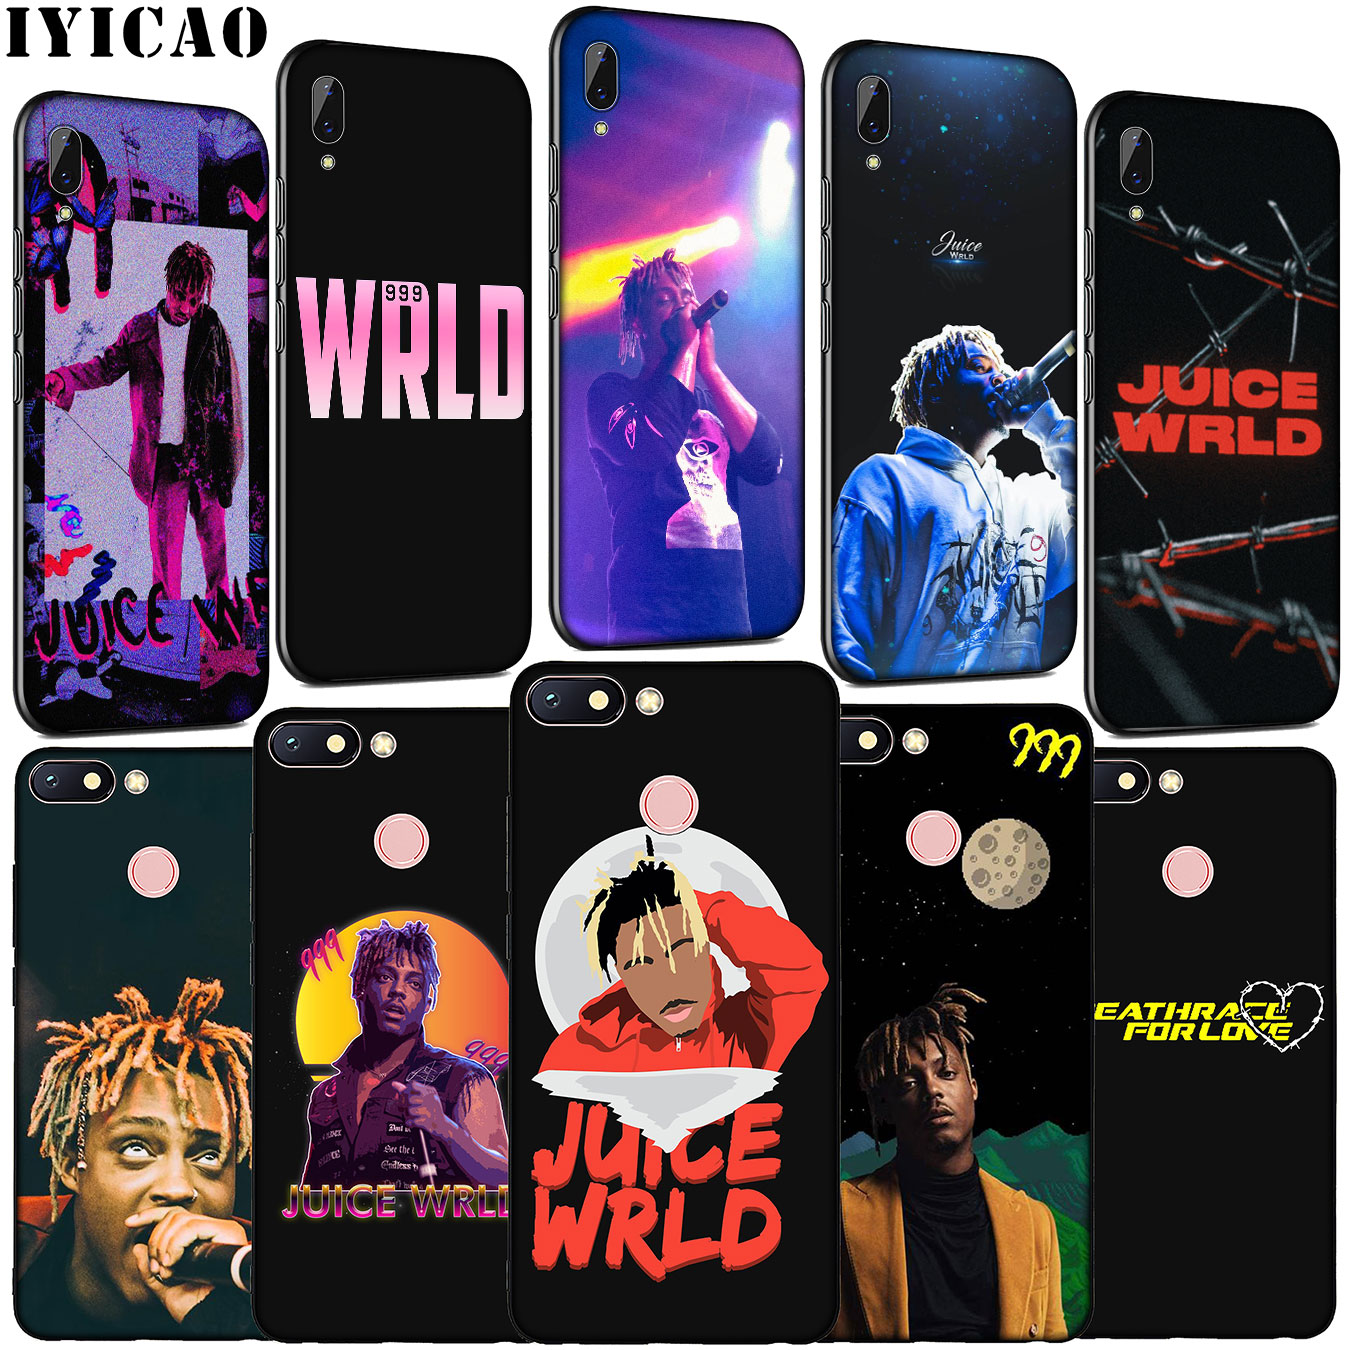 IYICAO Hot singer Juice WRLD <font><b>99</b></font> Soft Silicone Phone Case for <font><b>Xiaomi</b></font> <font><b>Redmi</b></font> Note 8 8T 8A 7 7A 6 6A <font><b>5</b></font> 5A K30 K20 Pro GO S2 Cover image